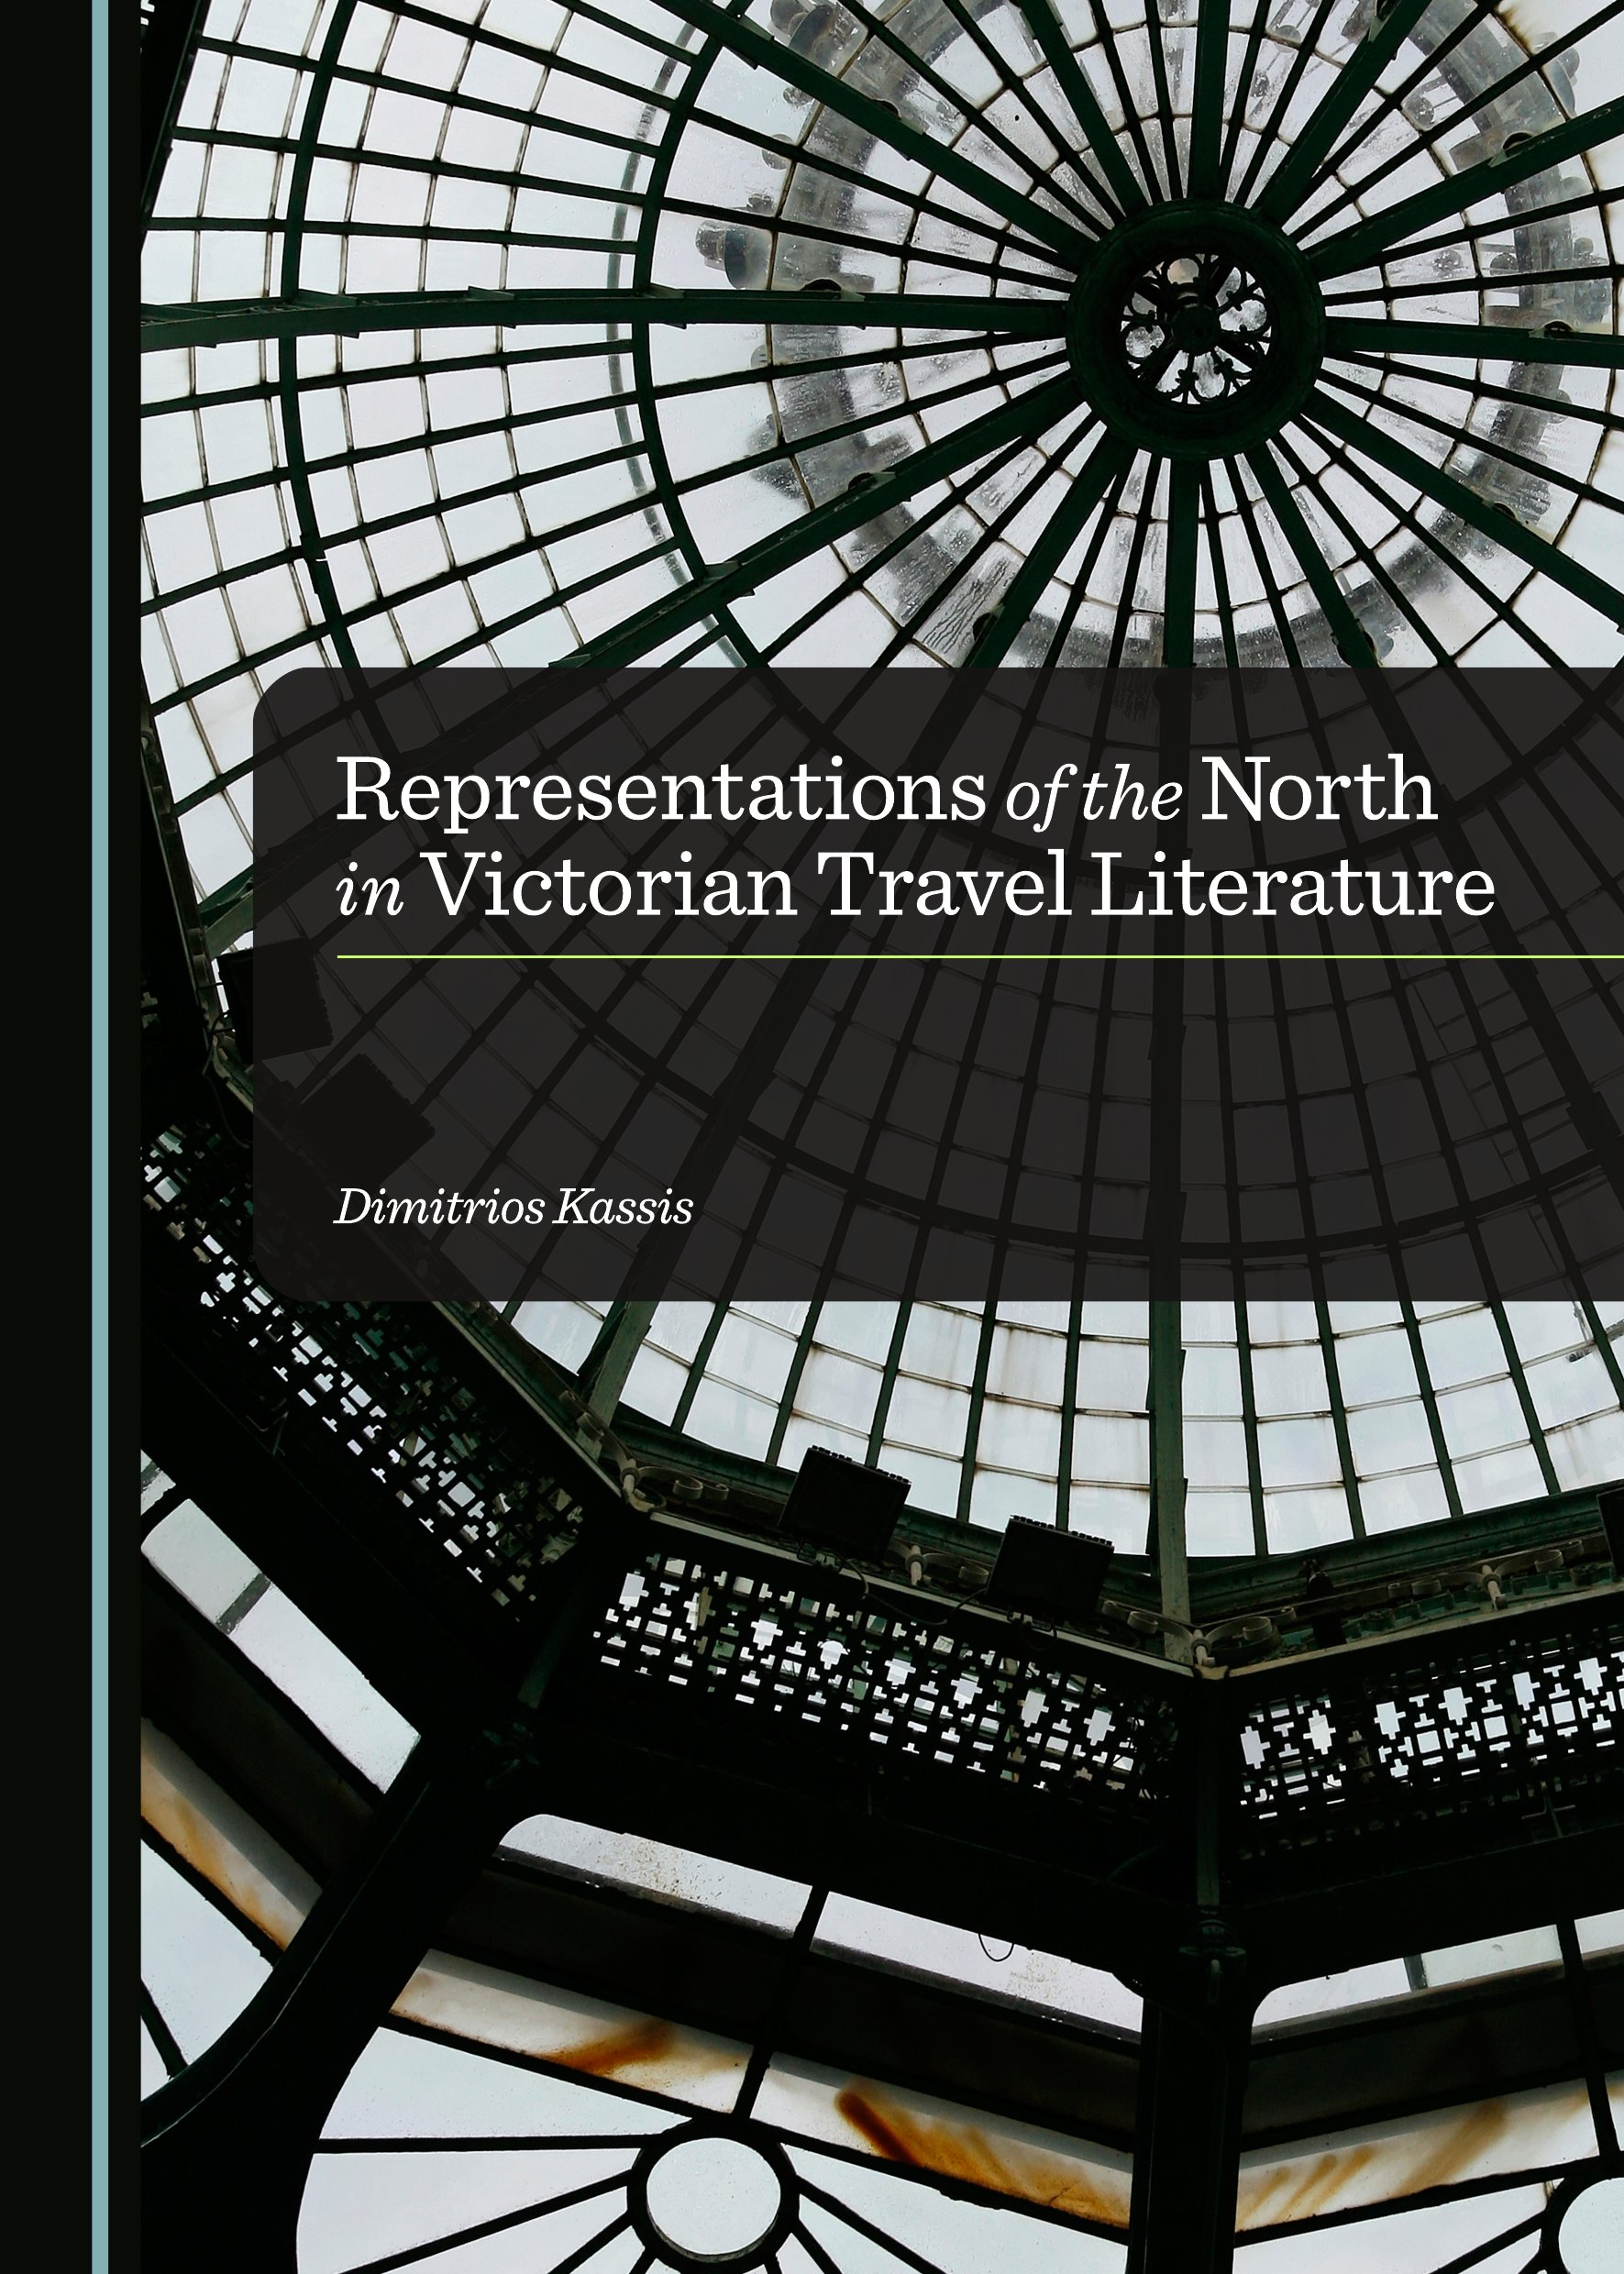 Representations of the North in Victorian Travel Literature